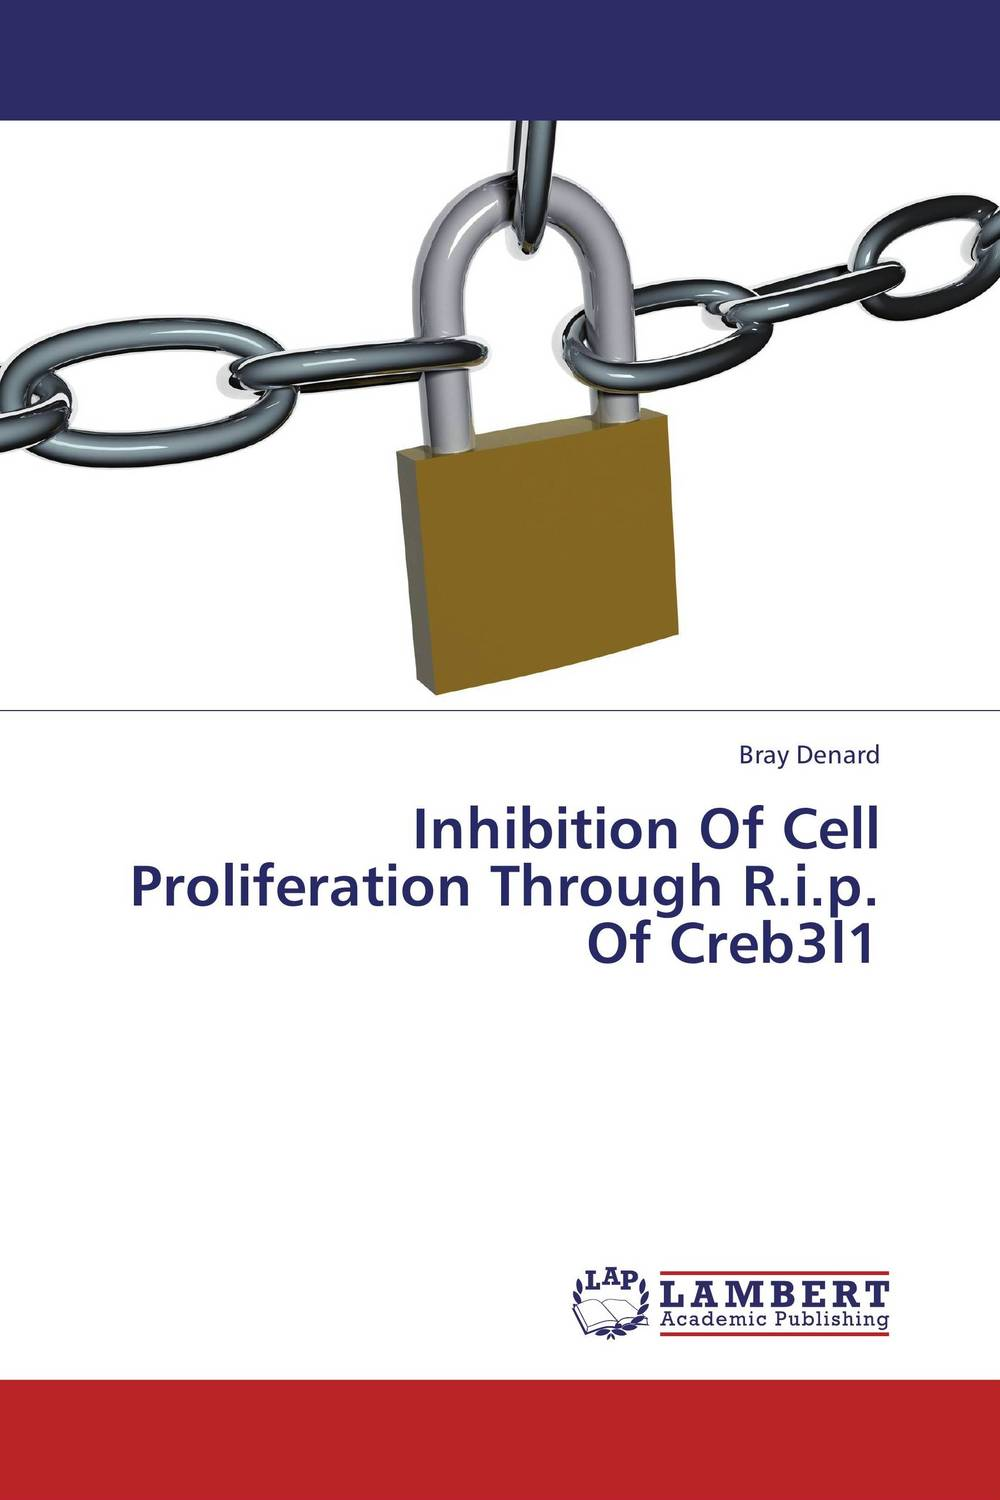 Inhibition Of Cell Proliferation Through R.i.p. Of Creb3l1 viruses cell transformation and cancer 5